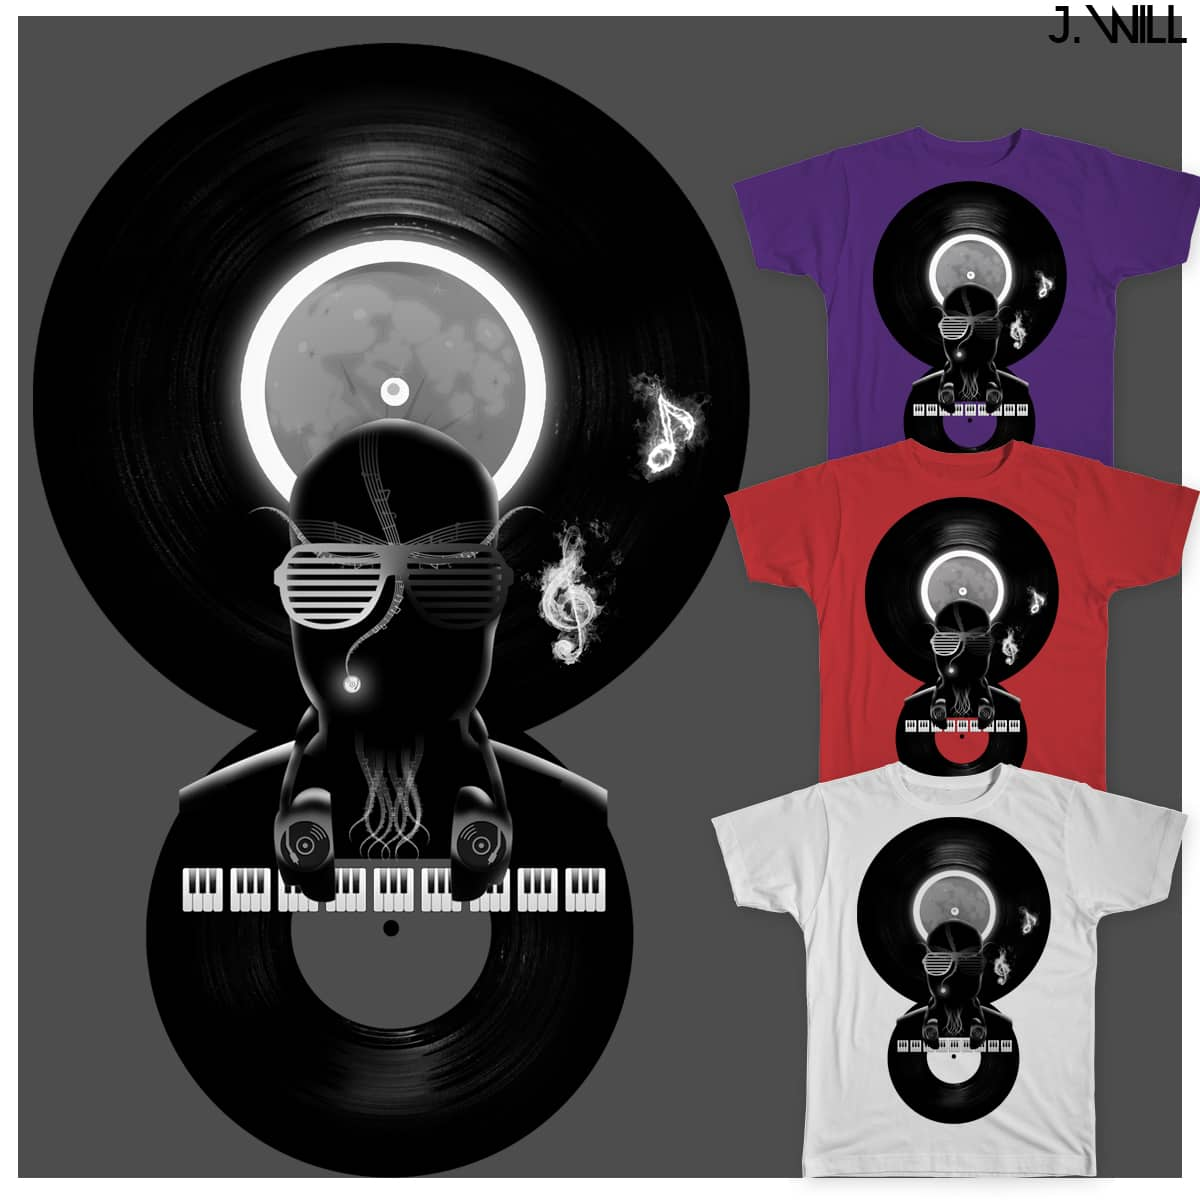 Night Music! by jwillpro on Threadless